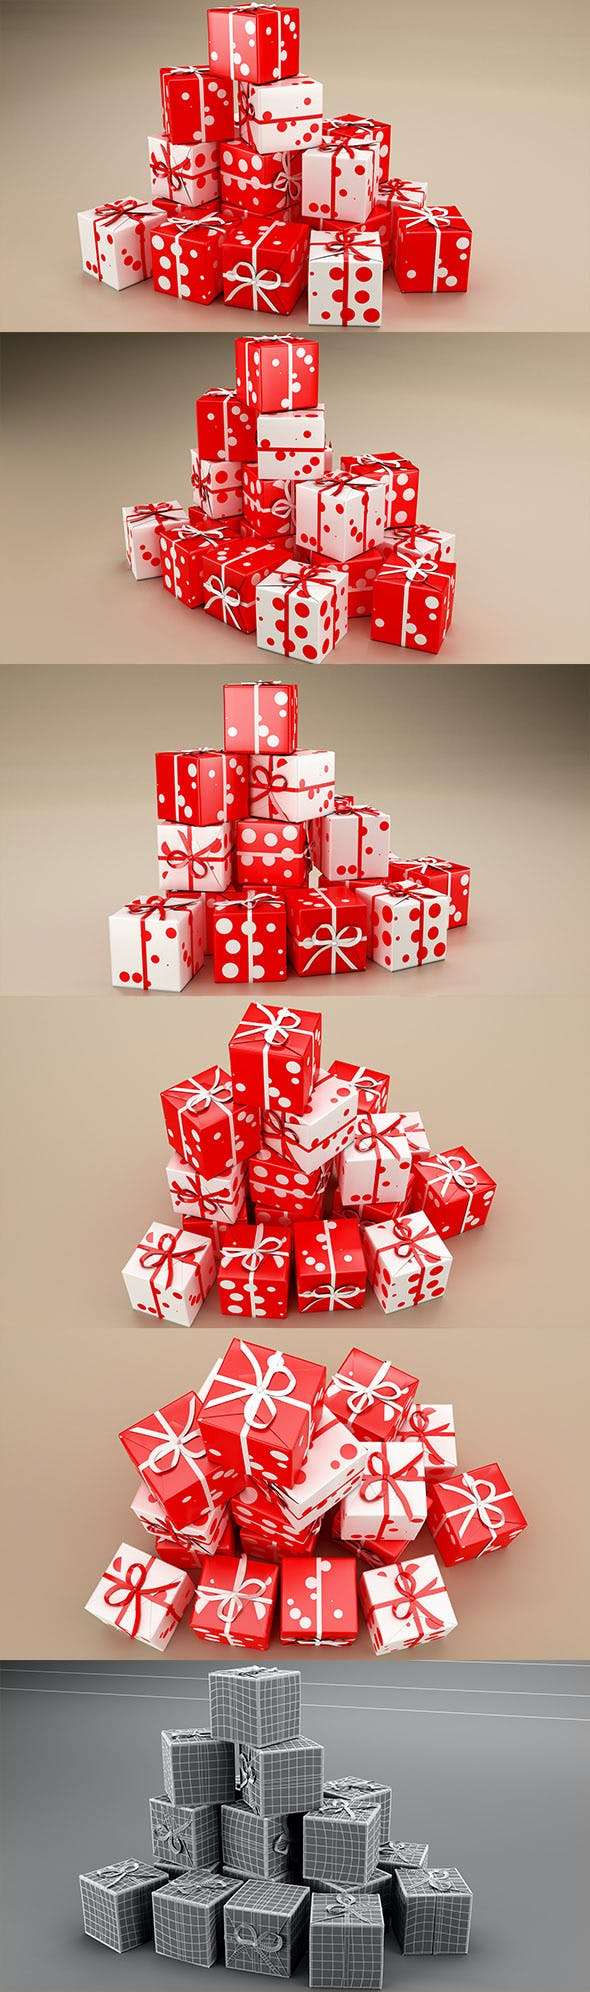 New Year Presents and Gift Boxes v2 - 3DOcean Item for Sale